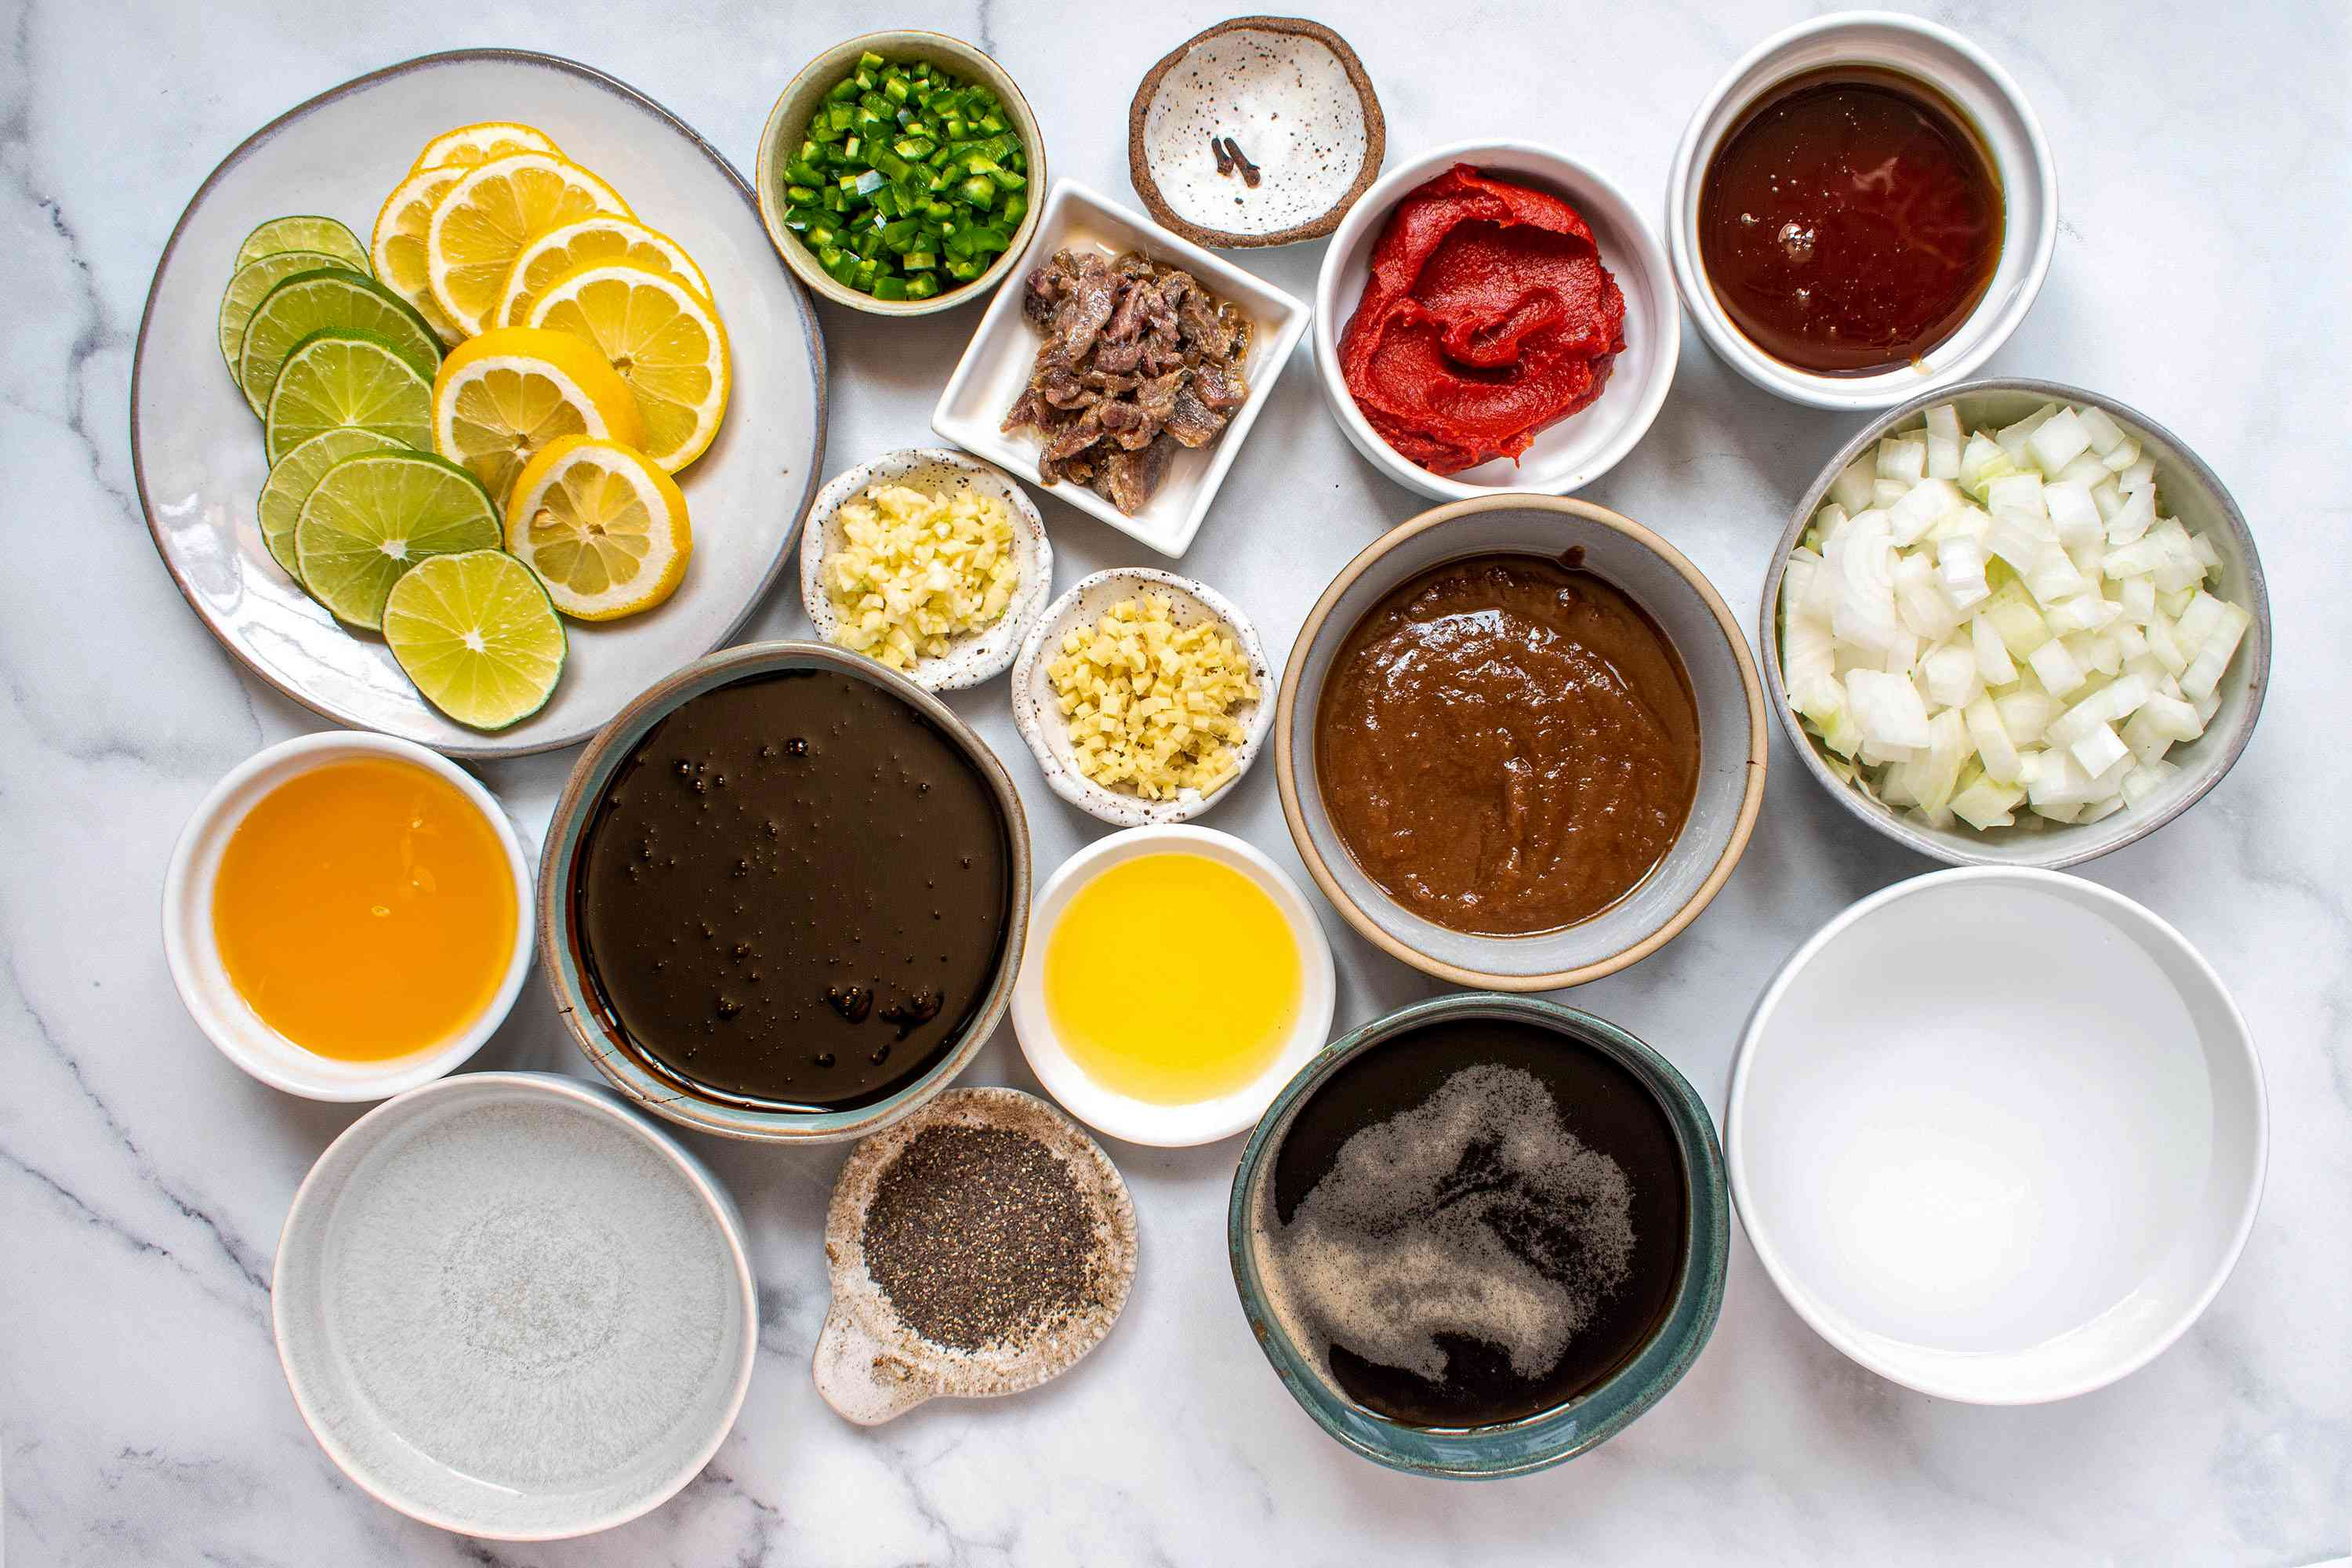 Homemade Worcestershire sauce ingredients